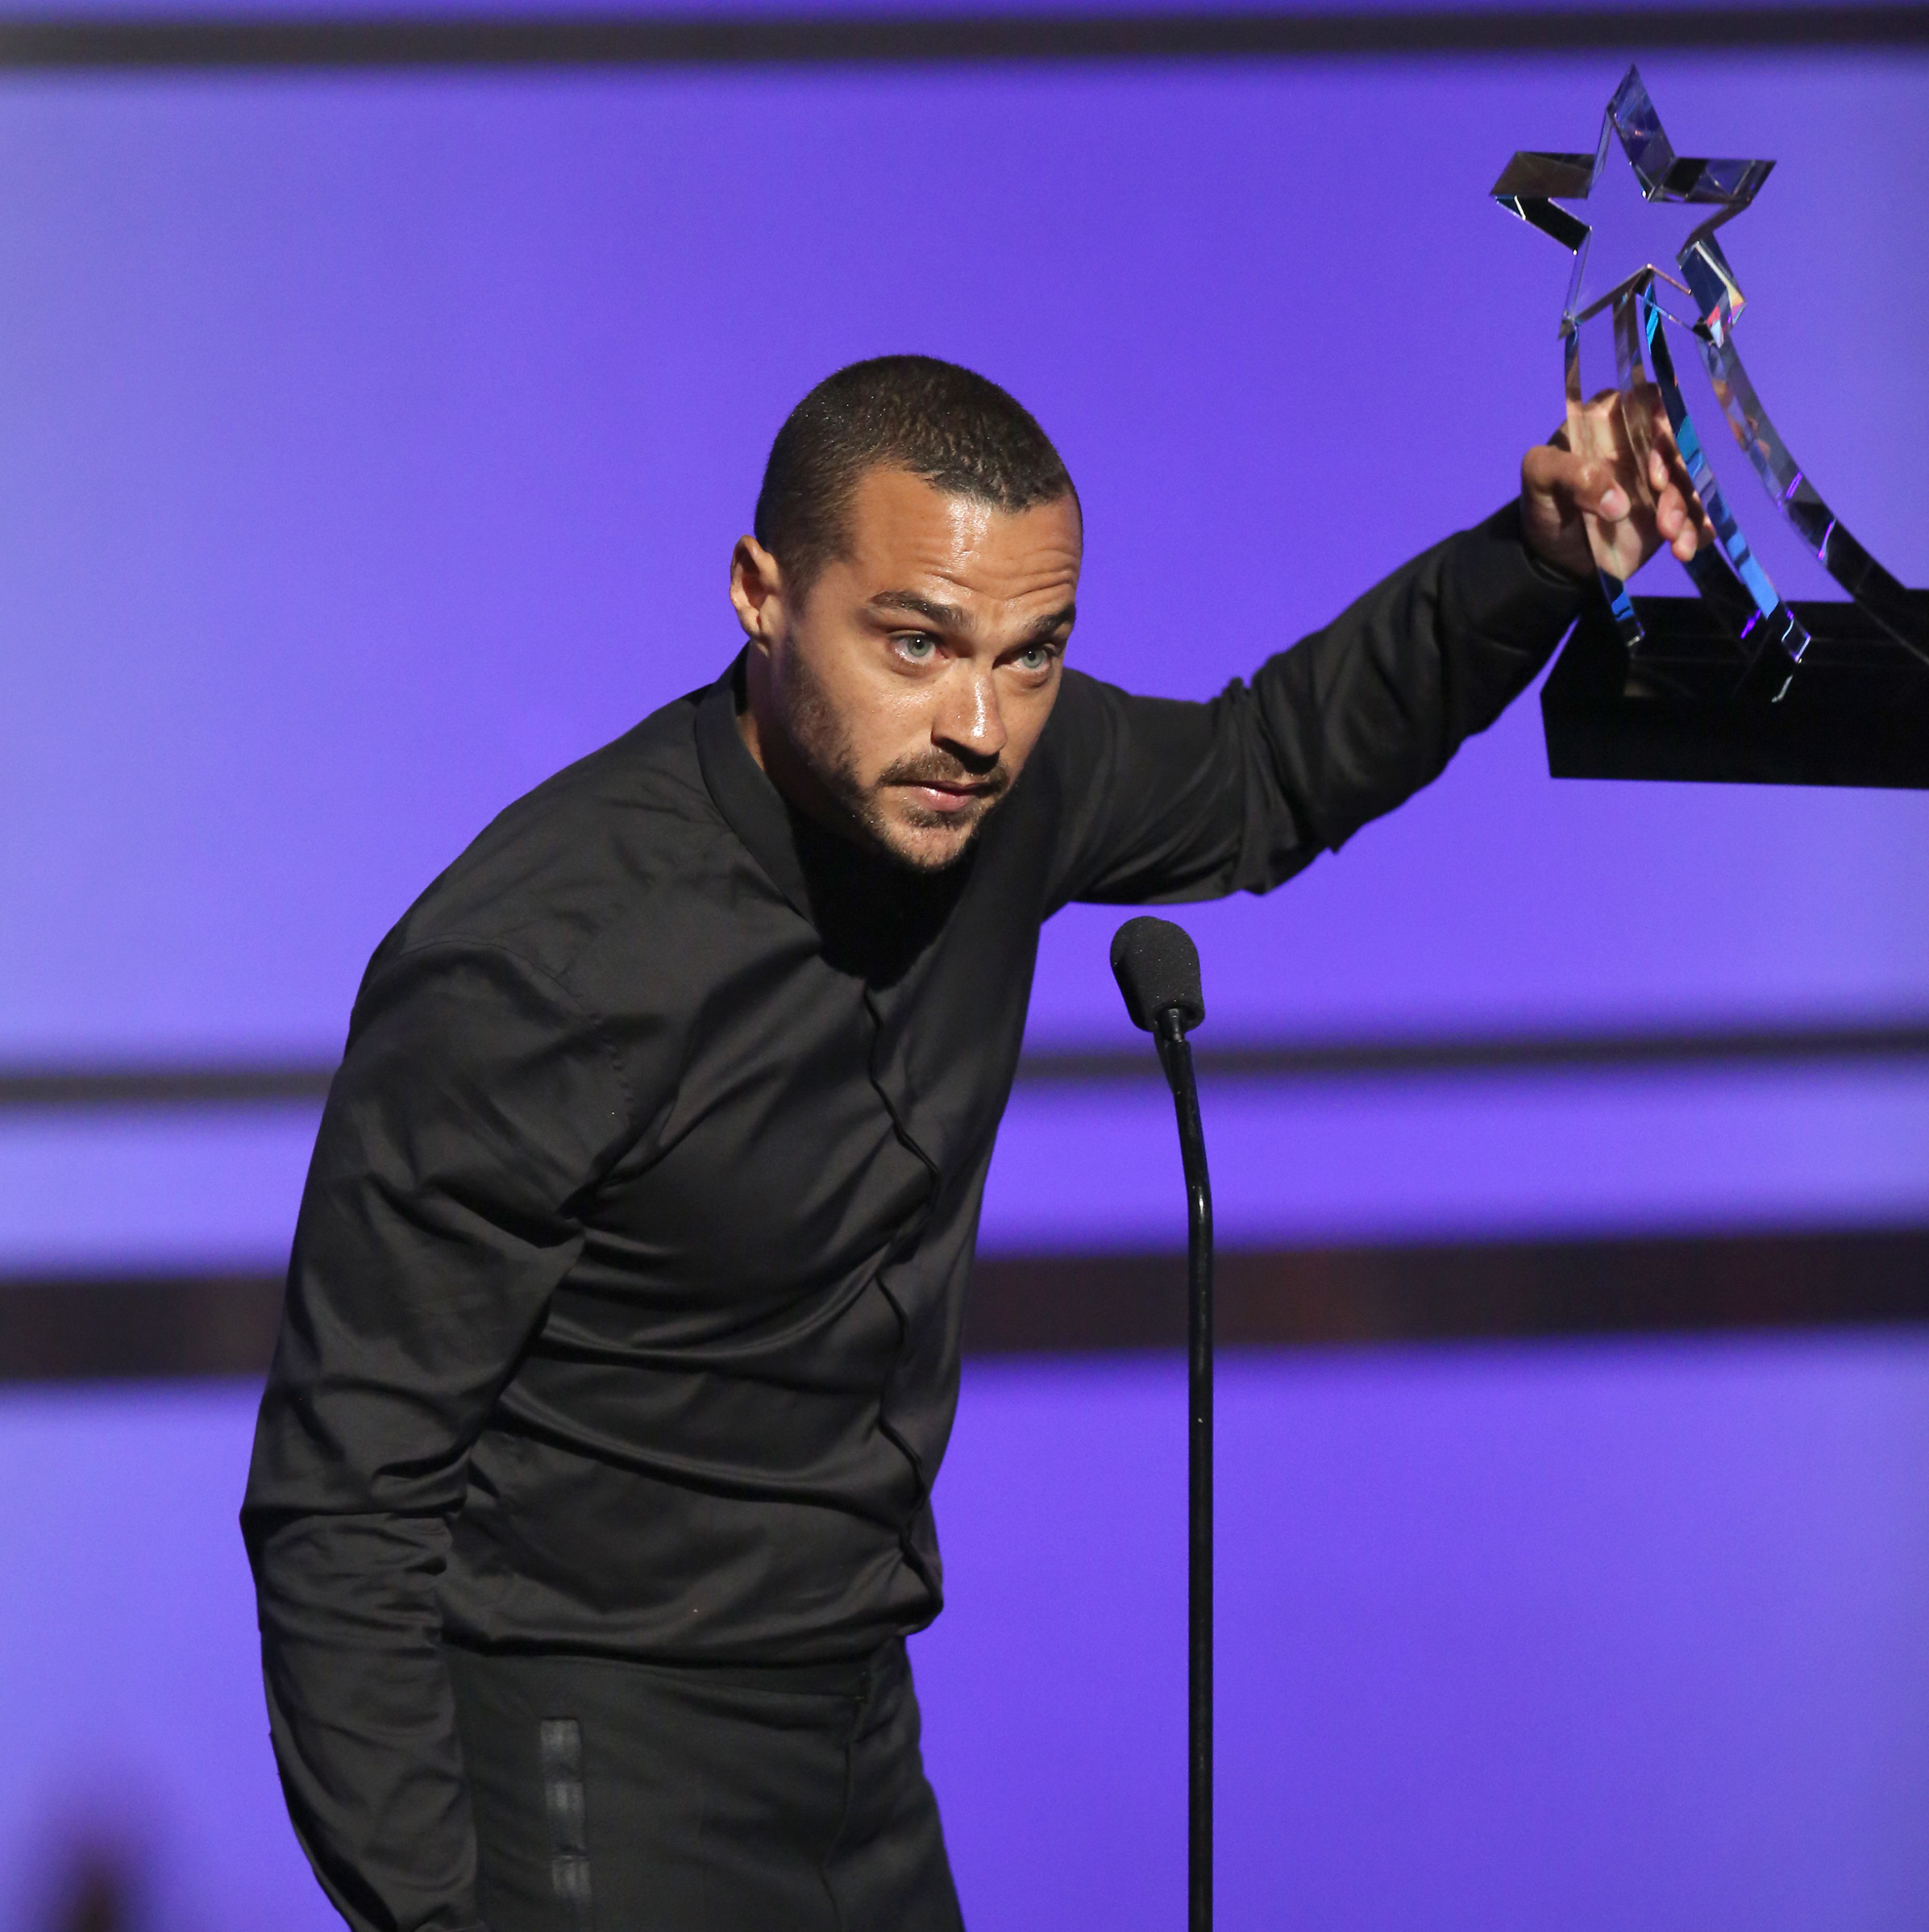 WATCH: Jesse Williams On Black Lives, Equal Rights And Freedom